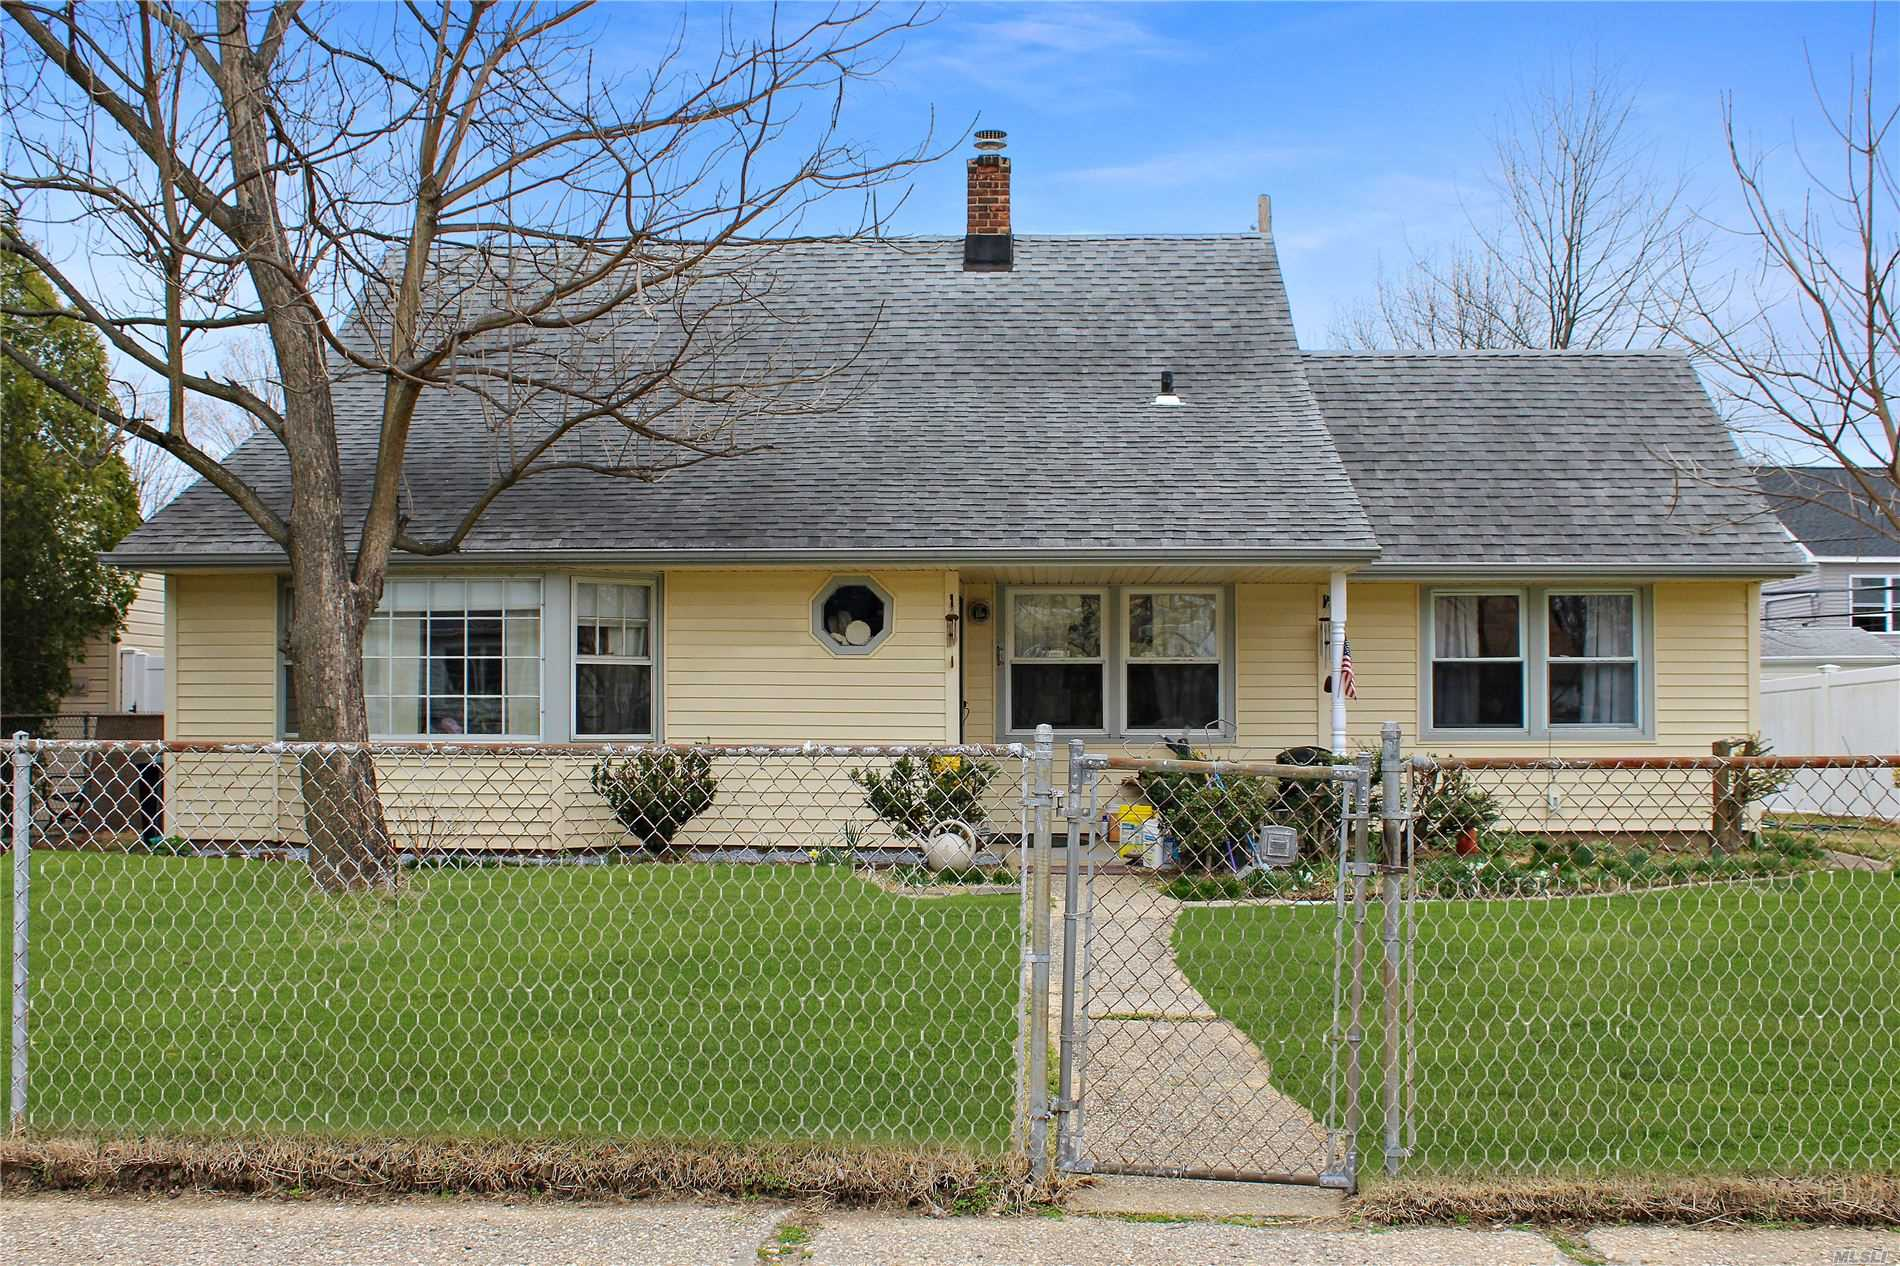 4 BR, 2 BTH CAPE. CLOSE TO ALL. 3.5 MILES TO LIRR. FORMAL DINING ROOM, LARGE EXPANDED LIVING ROOM W/ BAY WINDOW. 11 YR ROOF AND SIDING. 3 MINI SPLIT AIR/HEAT UNITS IN HOME. Come See Today.